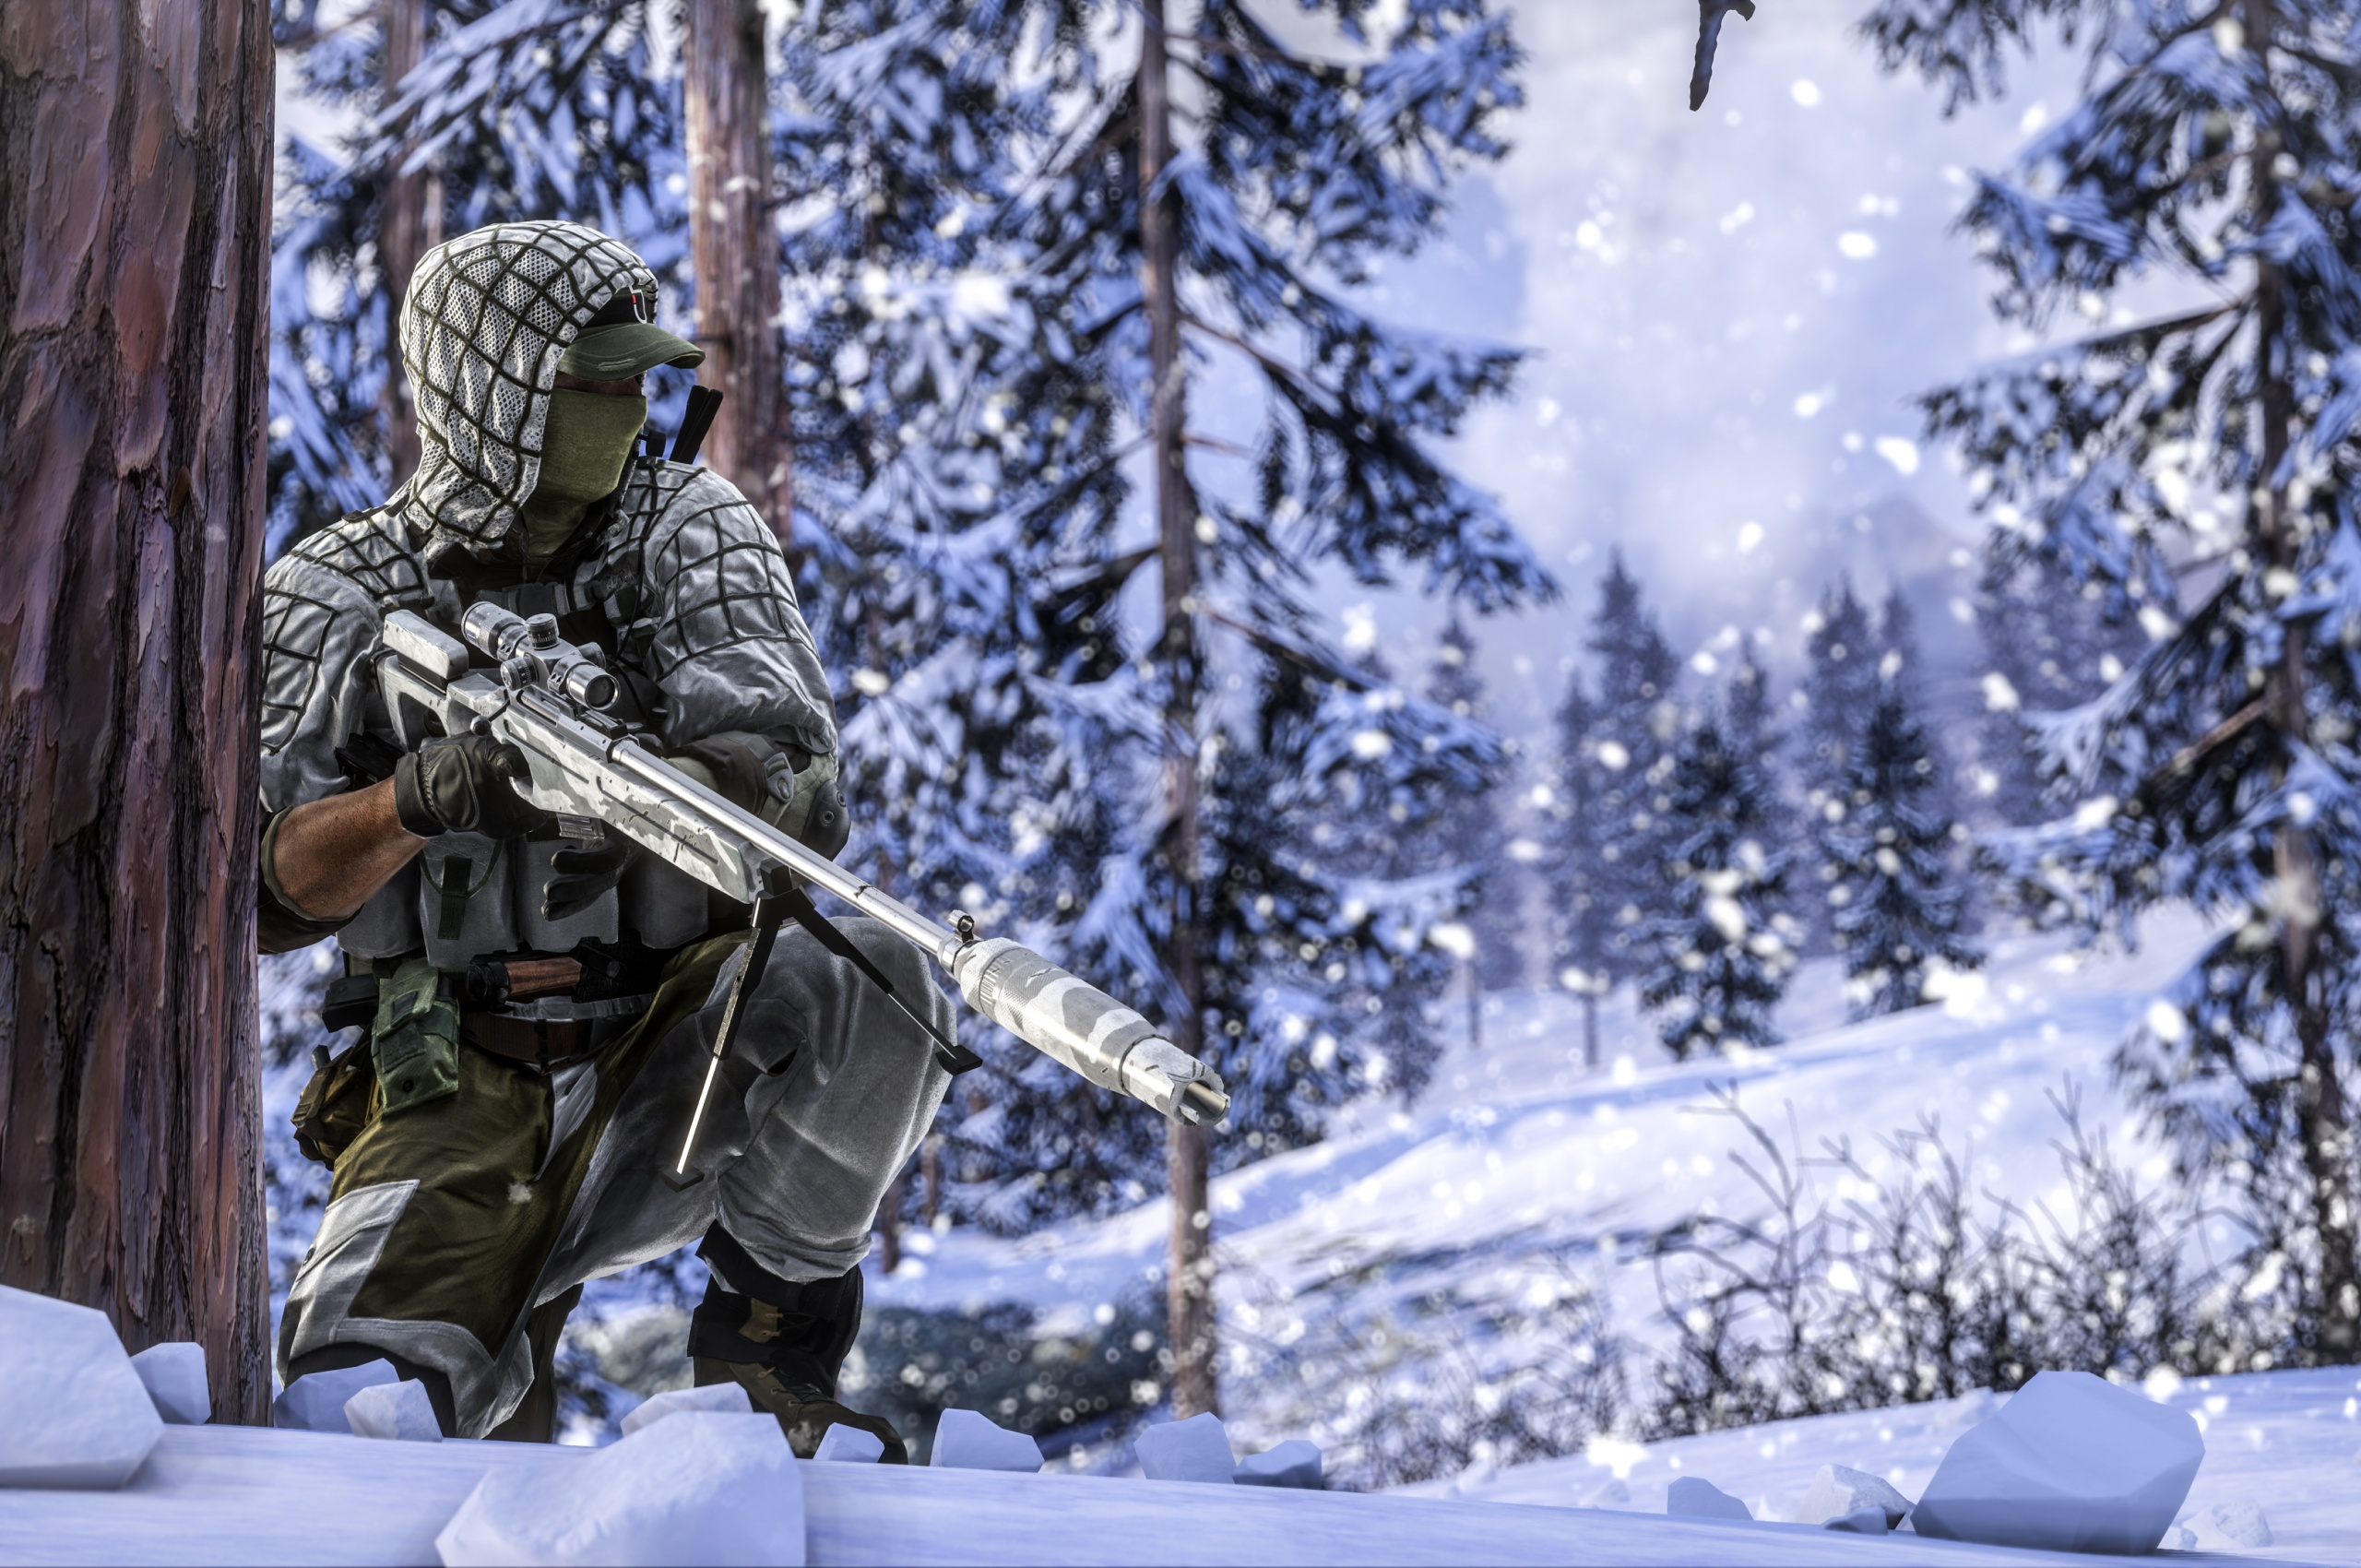 Winter Sniper Rifle Battlefield